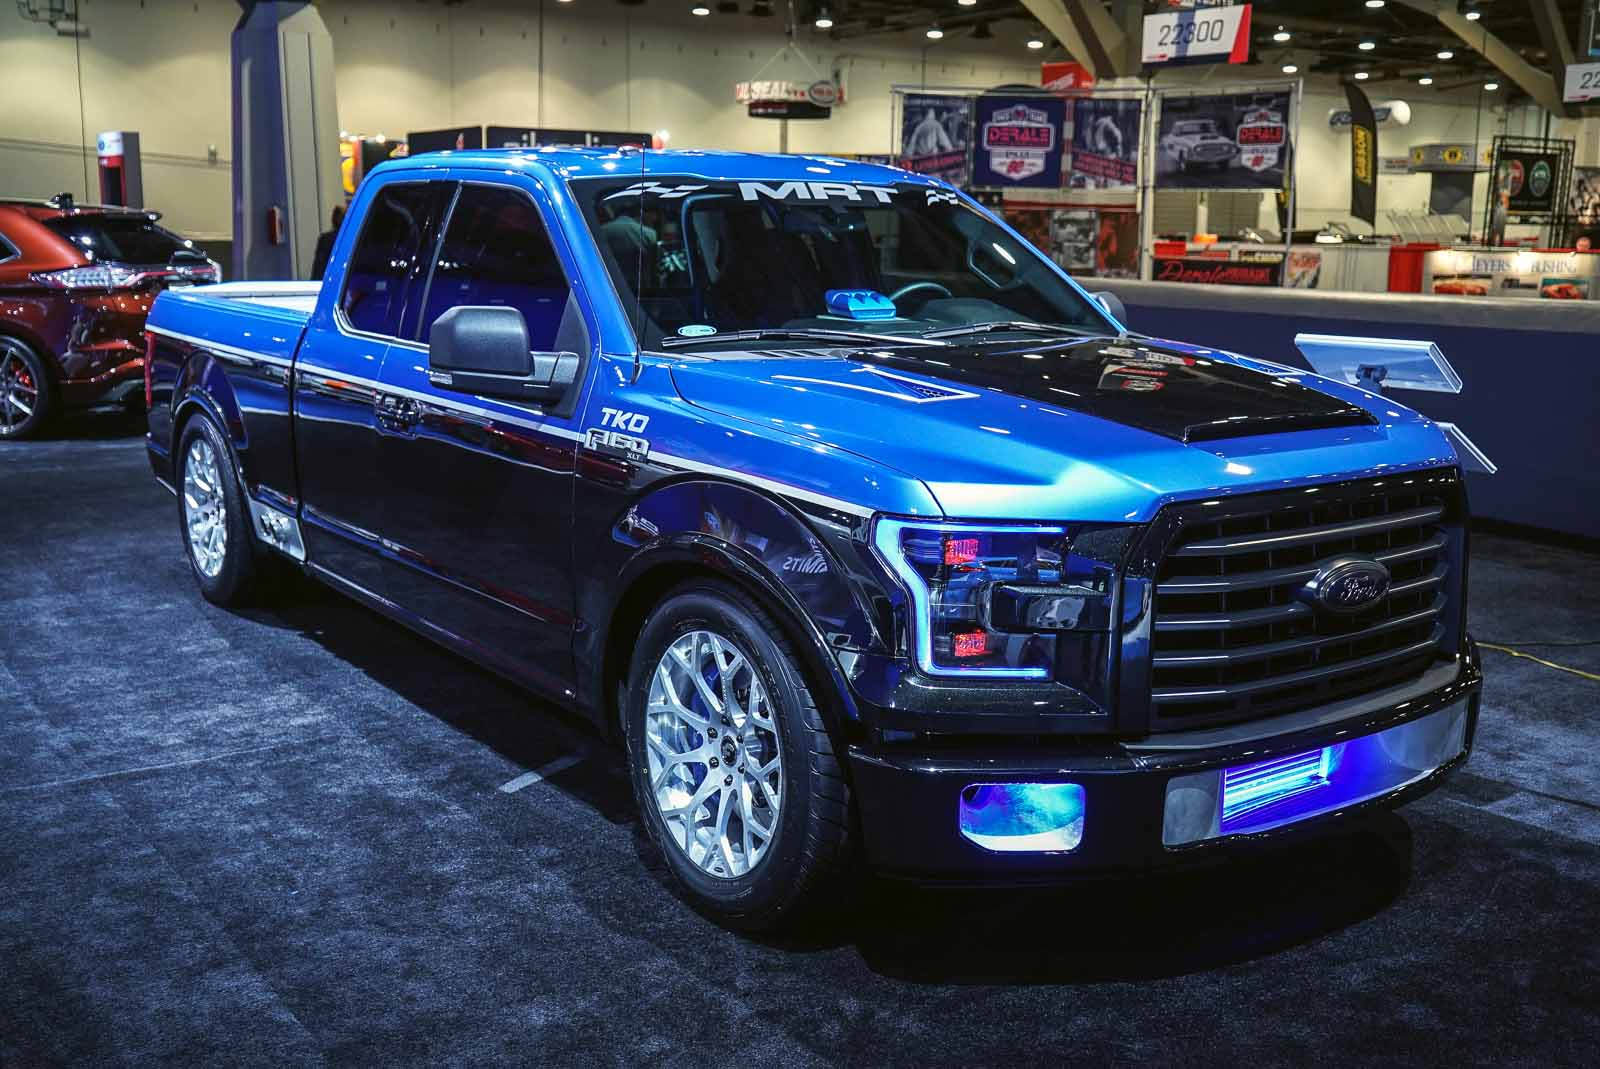 Ford f 150s ready for the track or trails at 2015 sema show autoguide com news